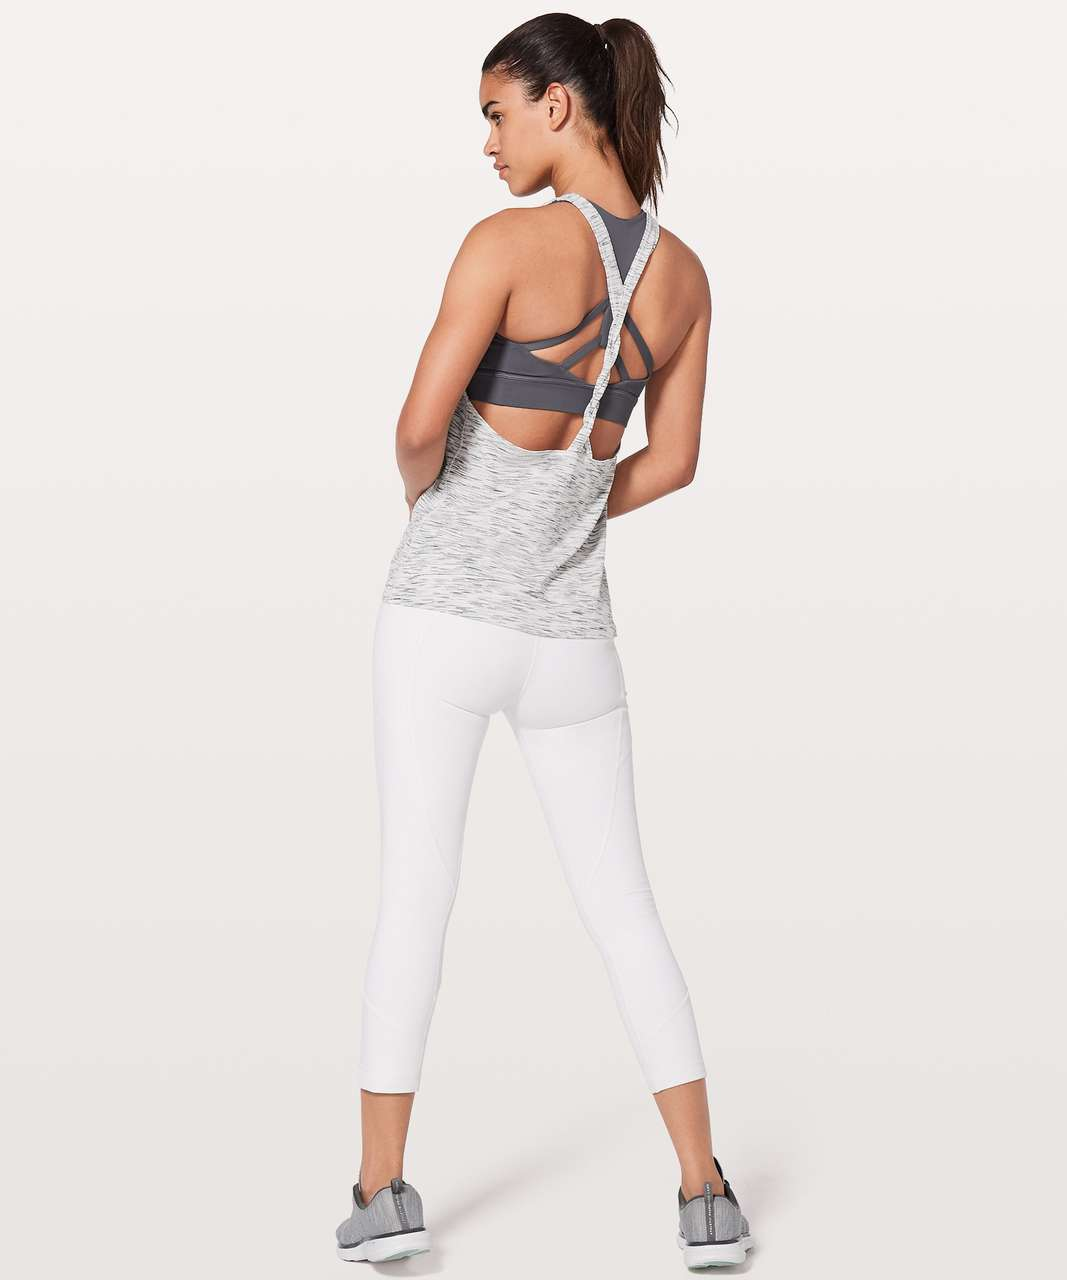 Lululemon Twist & Toil Tank - Tiger Space Dye Black White / Nebula